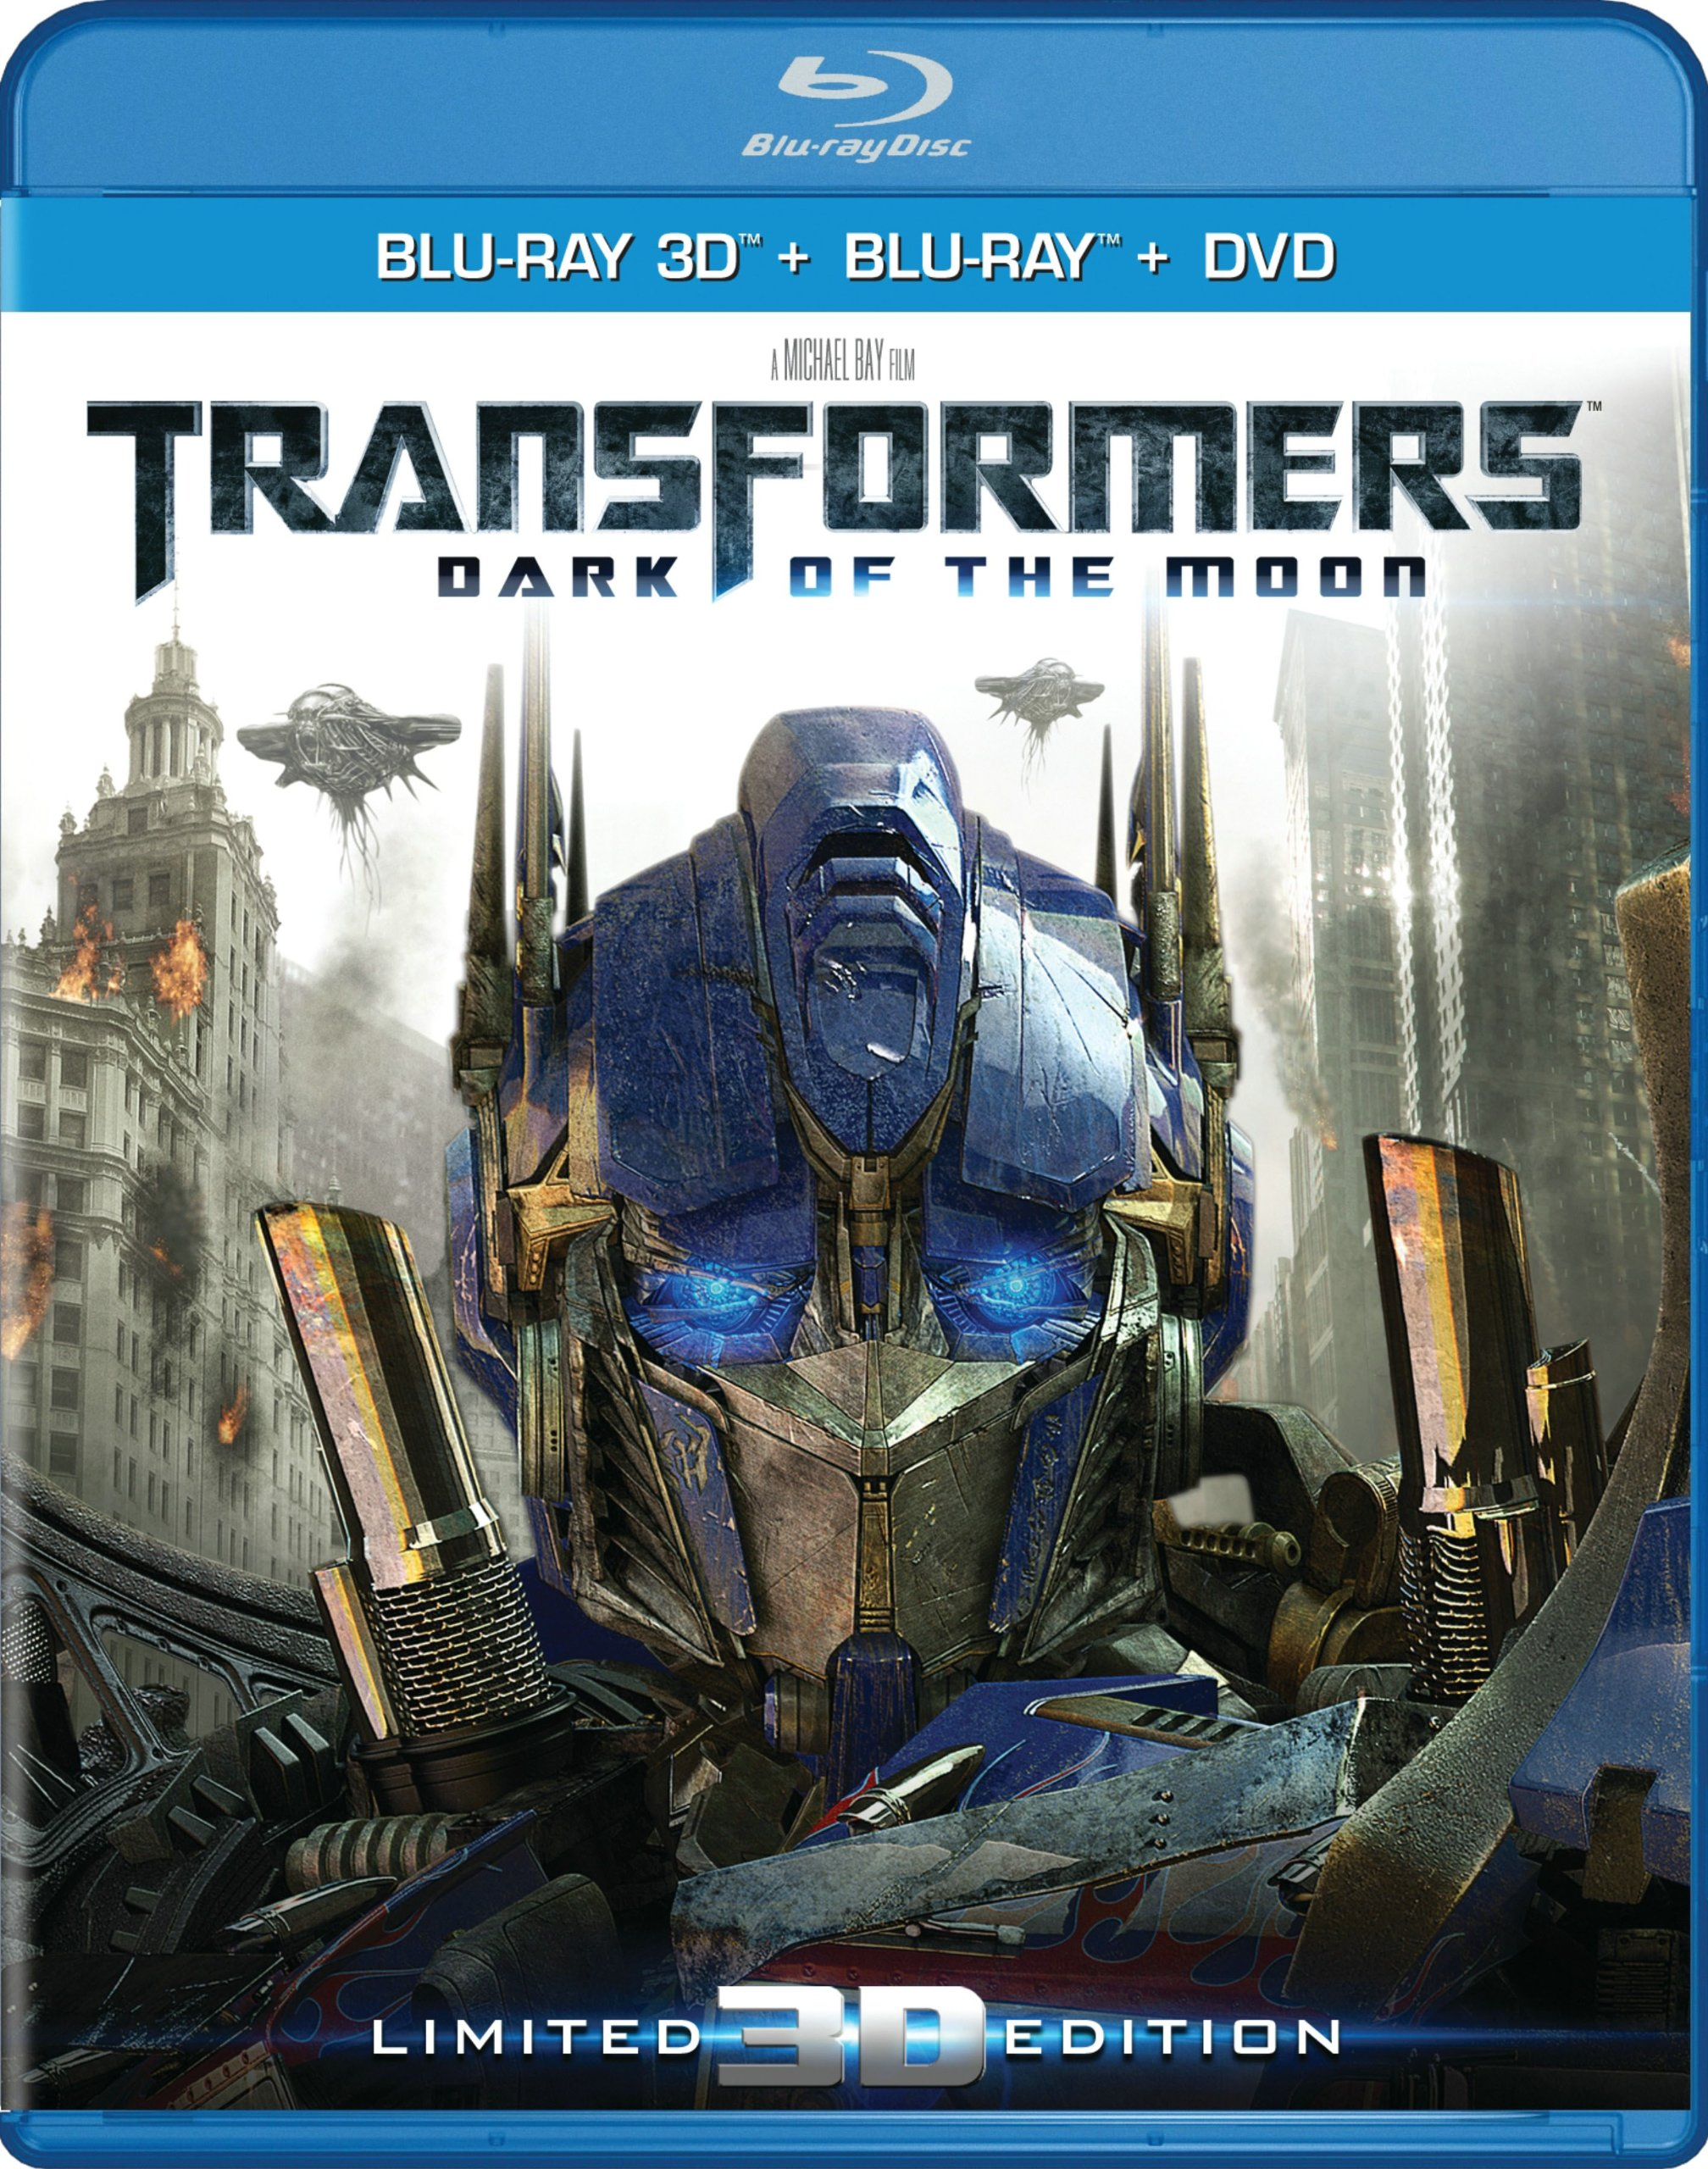 Blu-ray 3D : Transformers: Dark of the Moon (Ultimate Edition, Ultraviolet Digital Copy, Boxed Set, Dolby, AC-3)